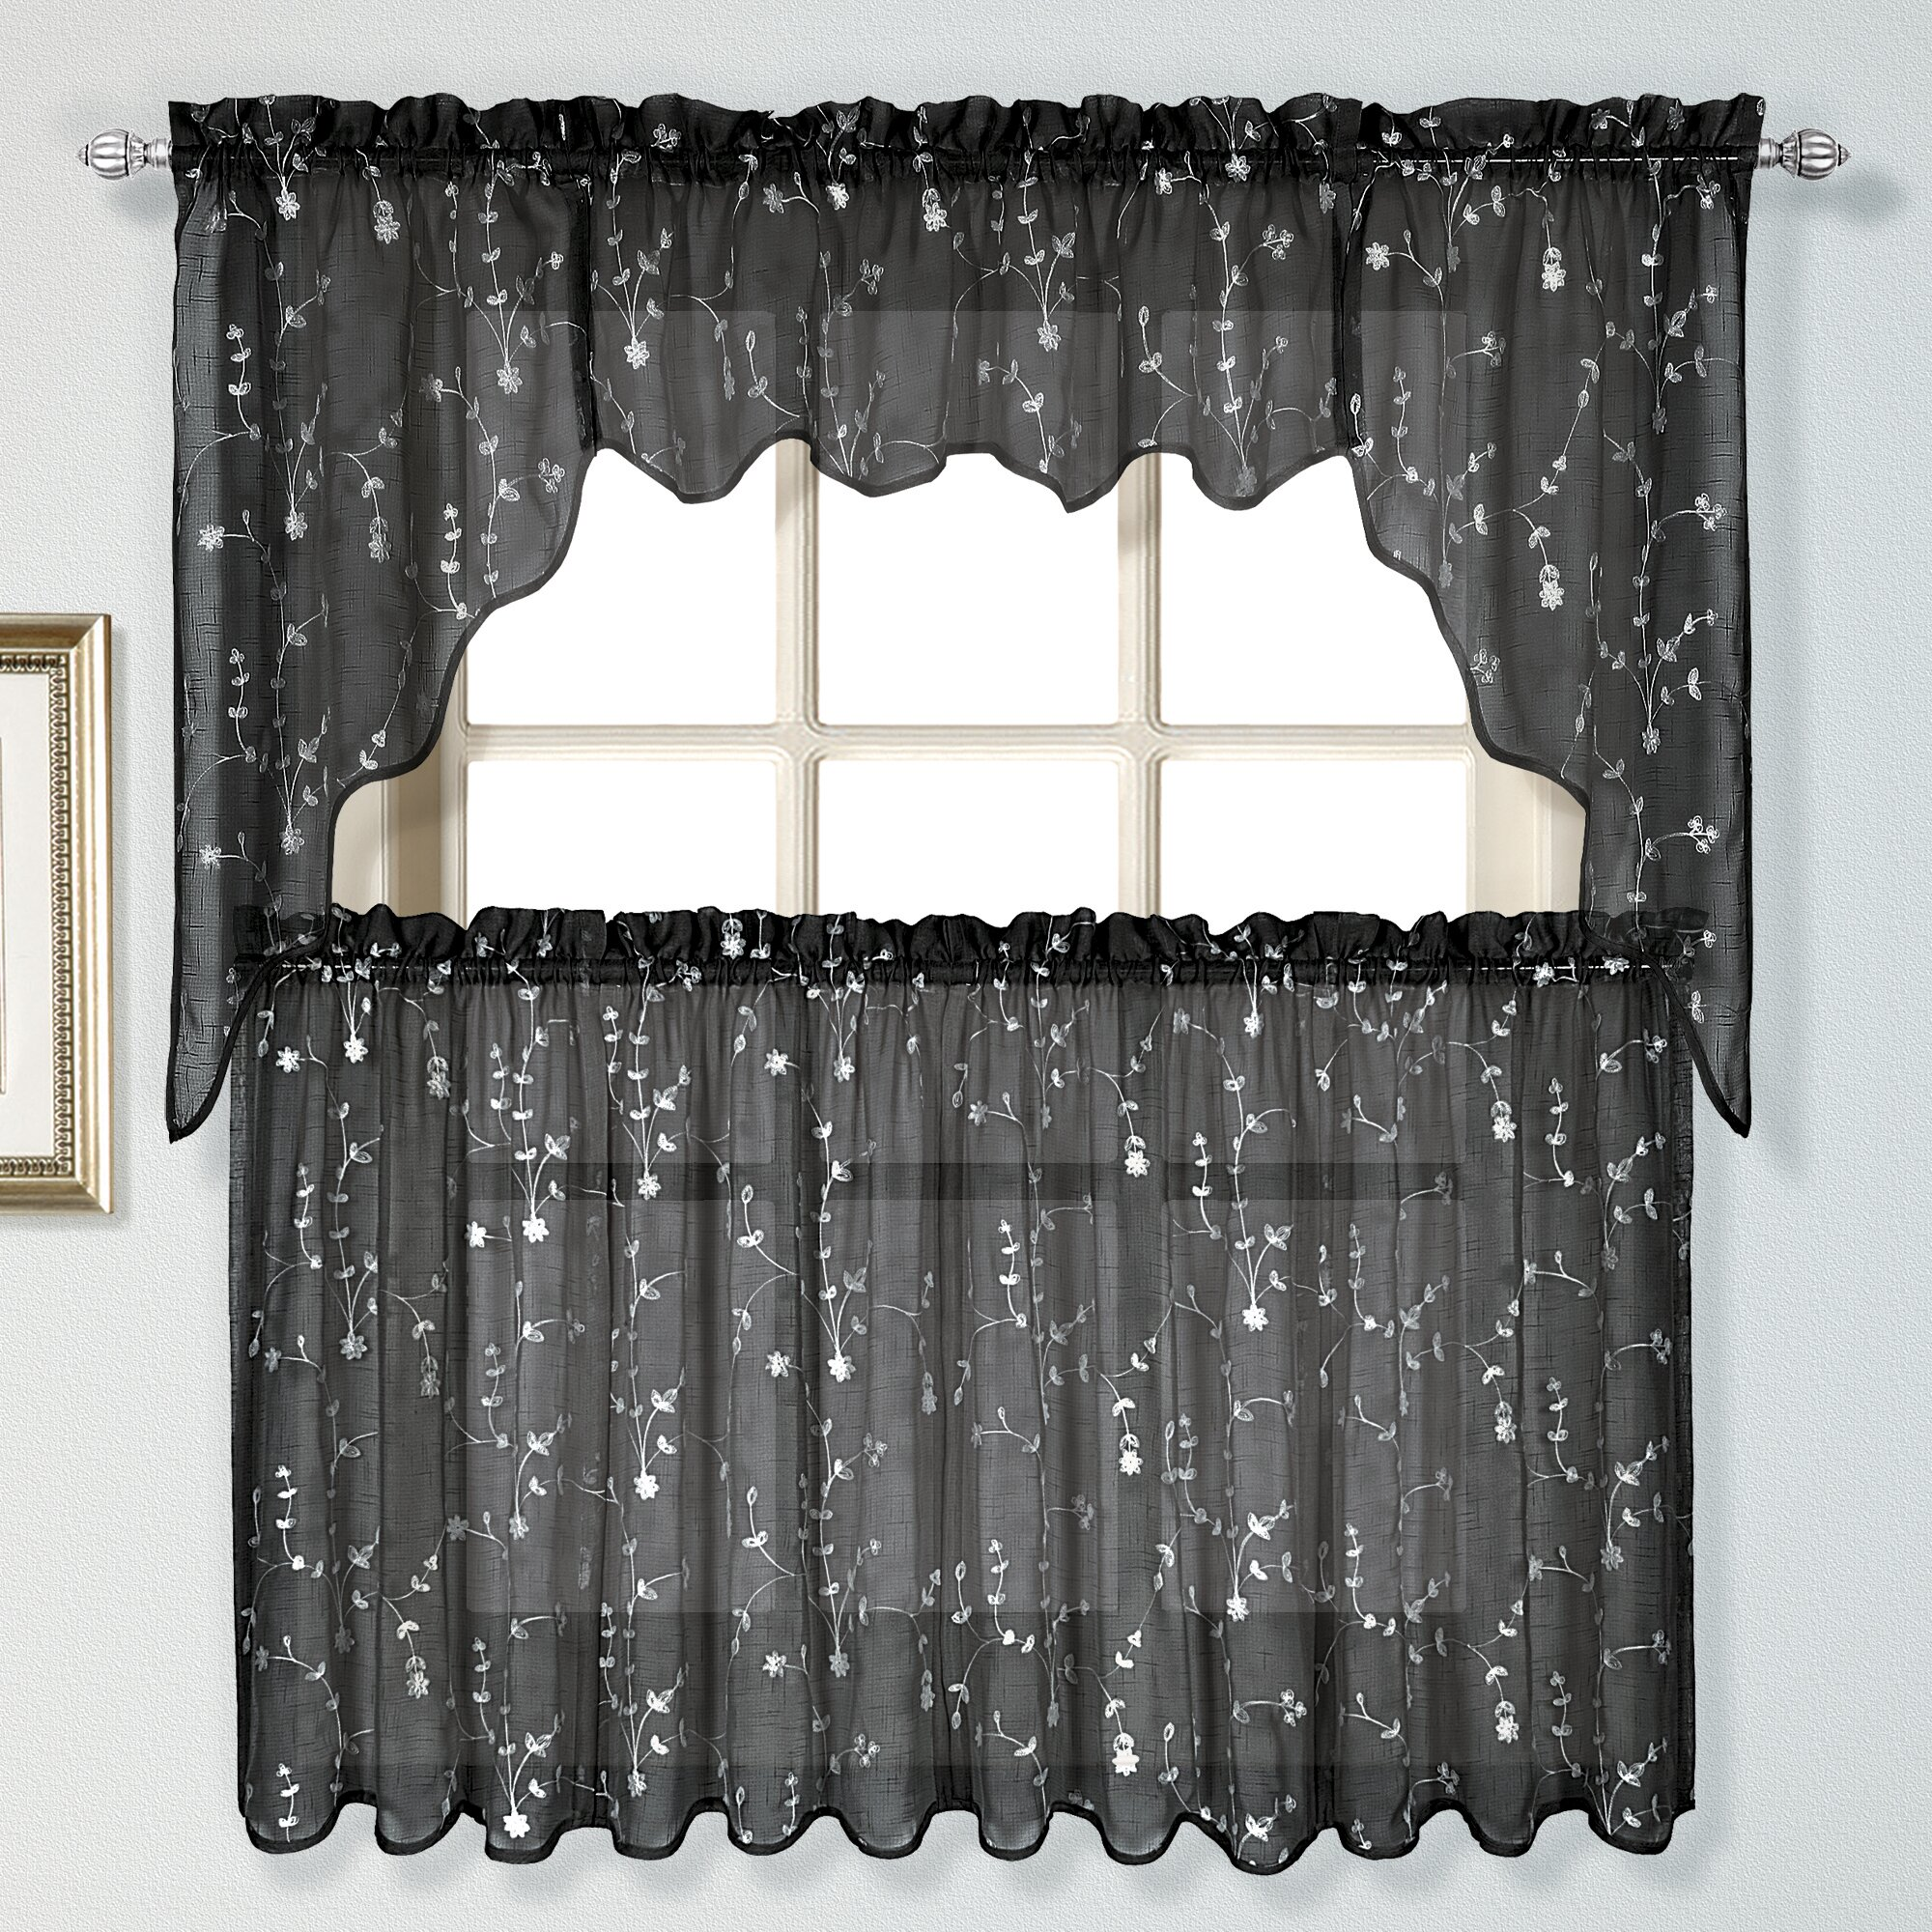 United Curtain Co Savannah Tier Curtain Reviews Wayfair